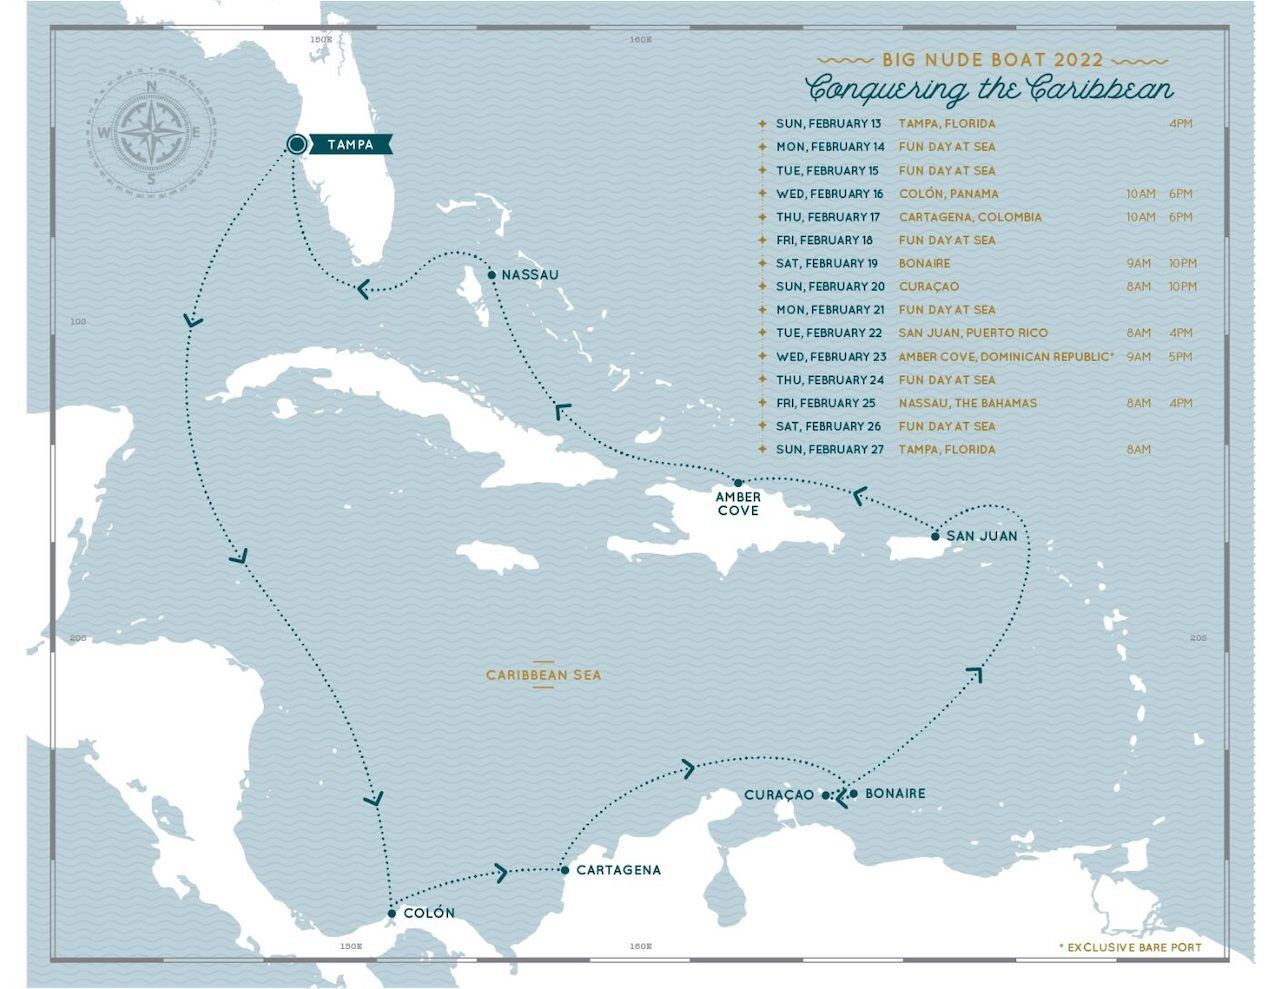 Nude cruise itinerary for Caribbean trip in 2022